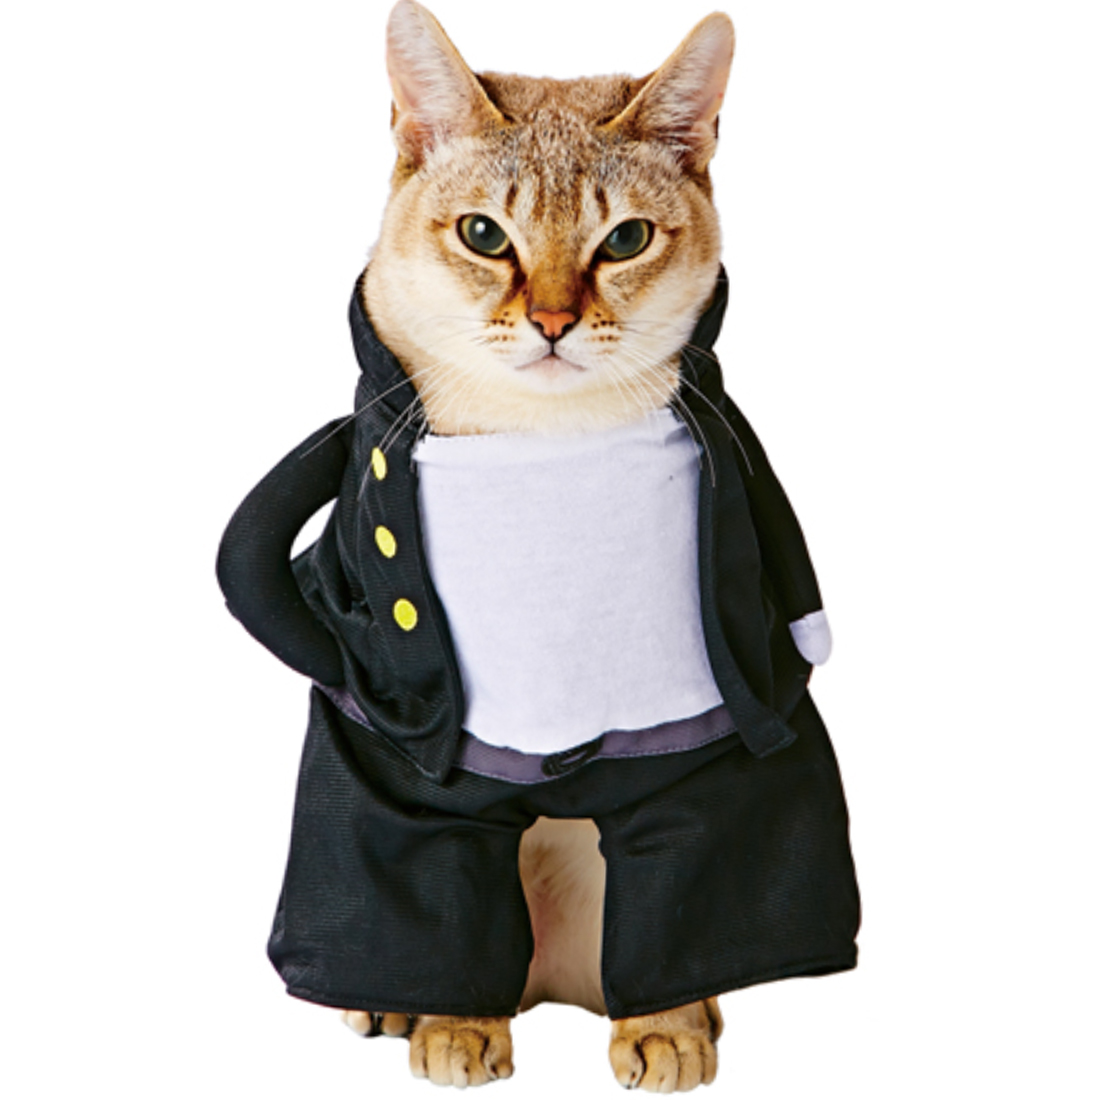 Petio Halloween Men High School Uniforms Style Cat Kitty Pet Dress Costume White Black